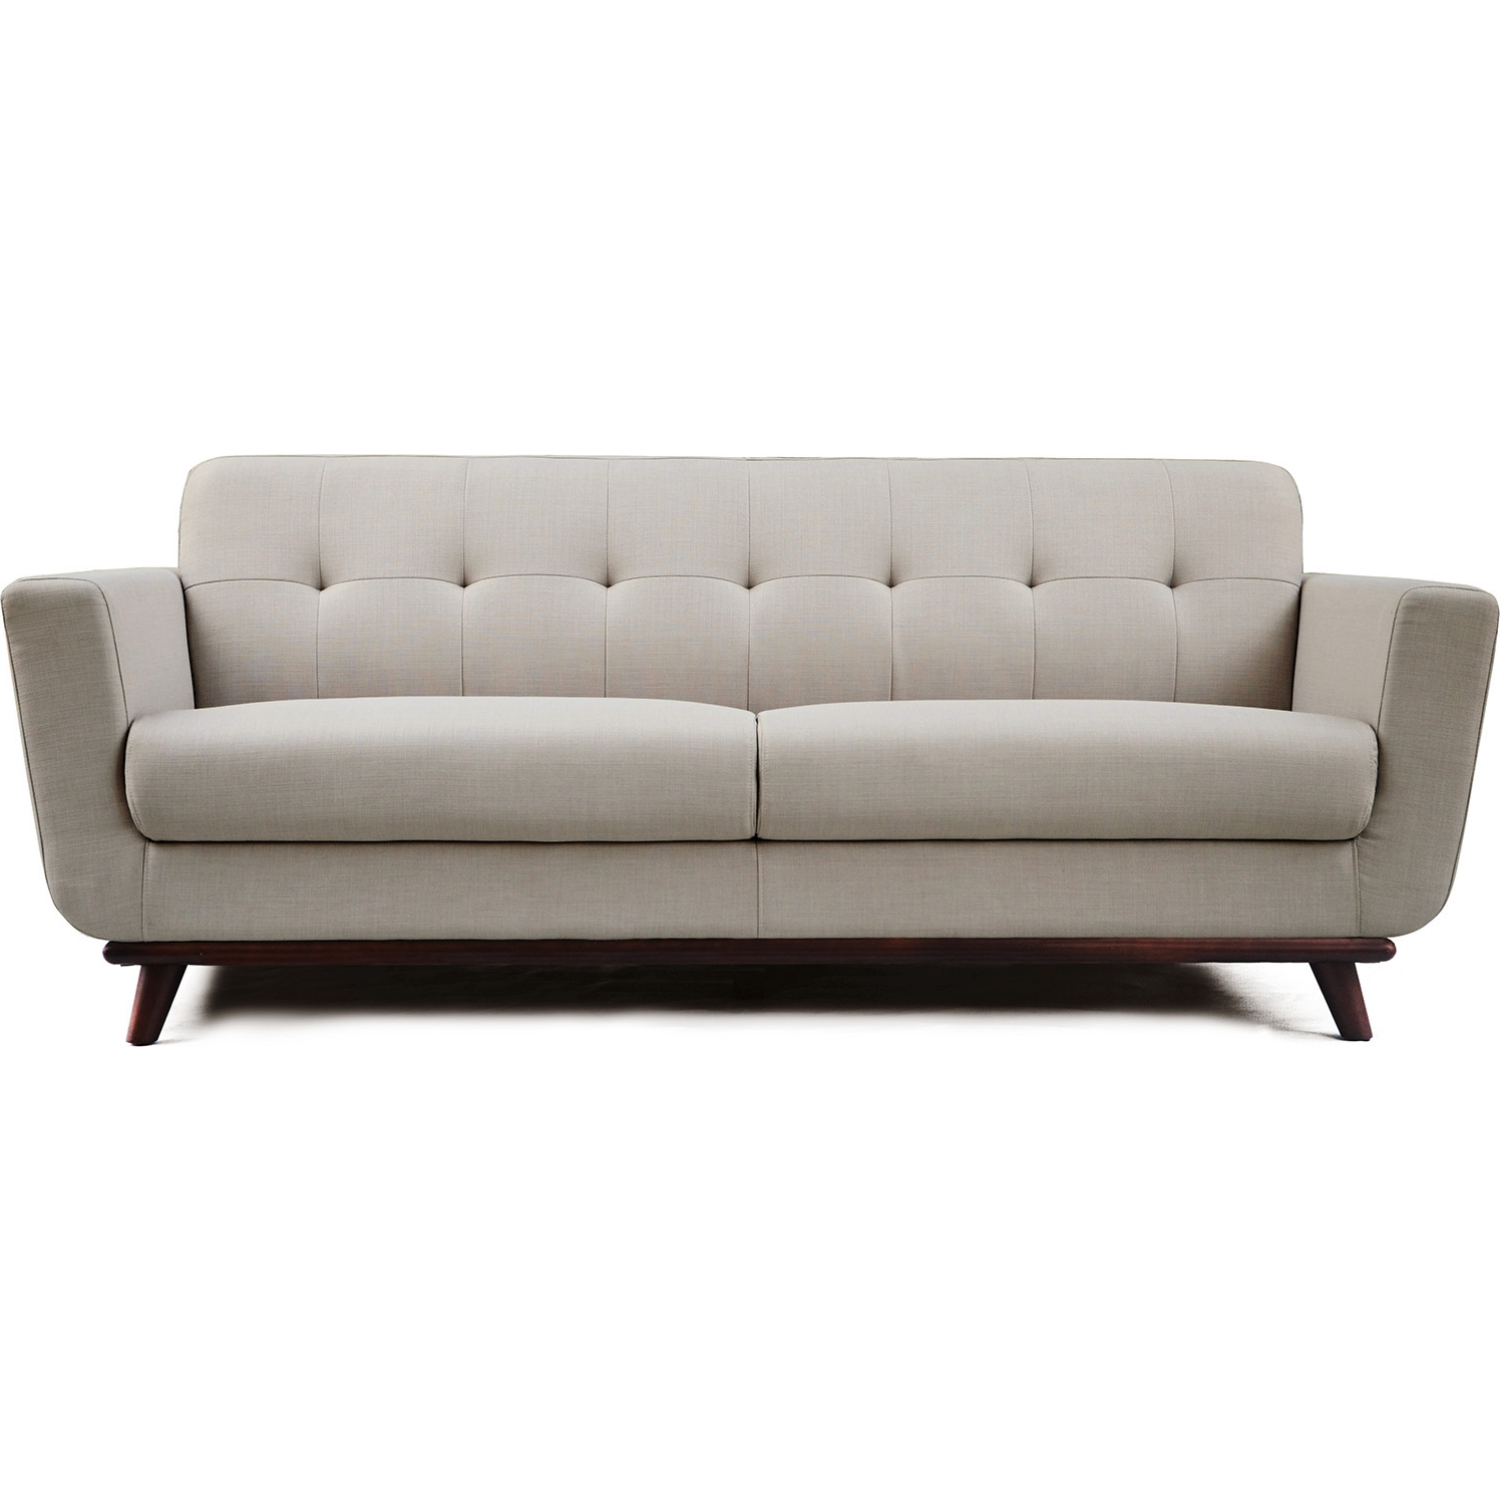 Diamond Modern White Leather U Shaped Sectional Sofa W: Diamond Sofa COCOSOSA Coco Sofa In Tufted Sand Fabric W